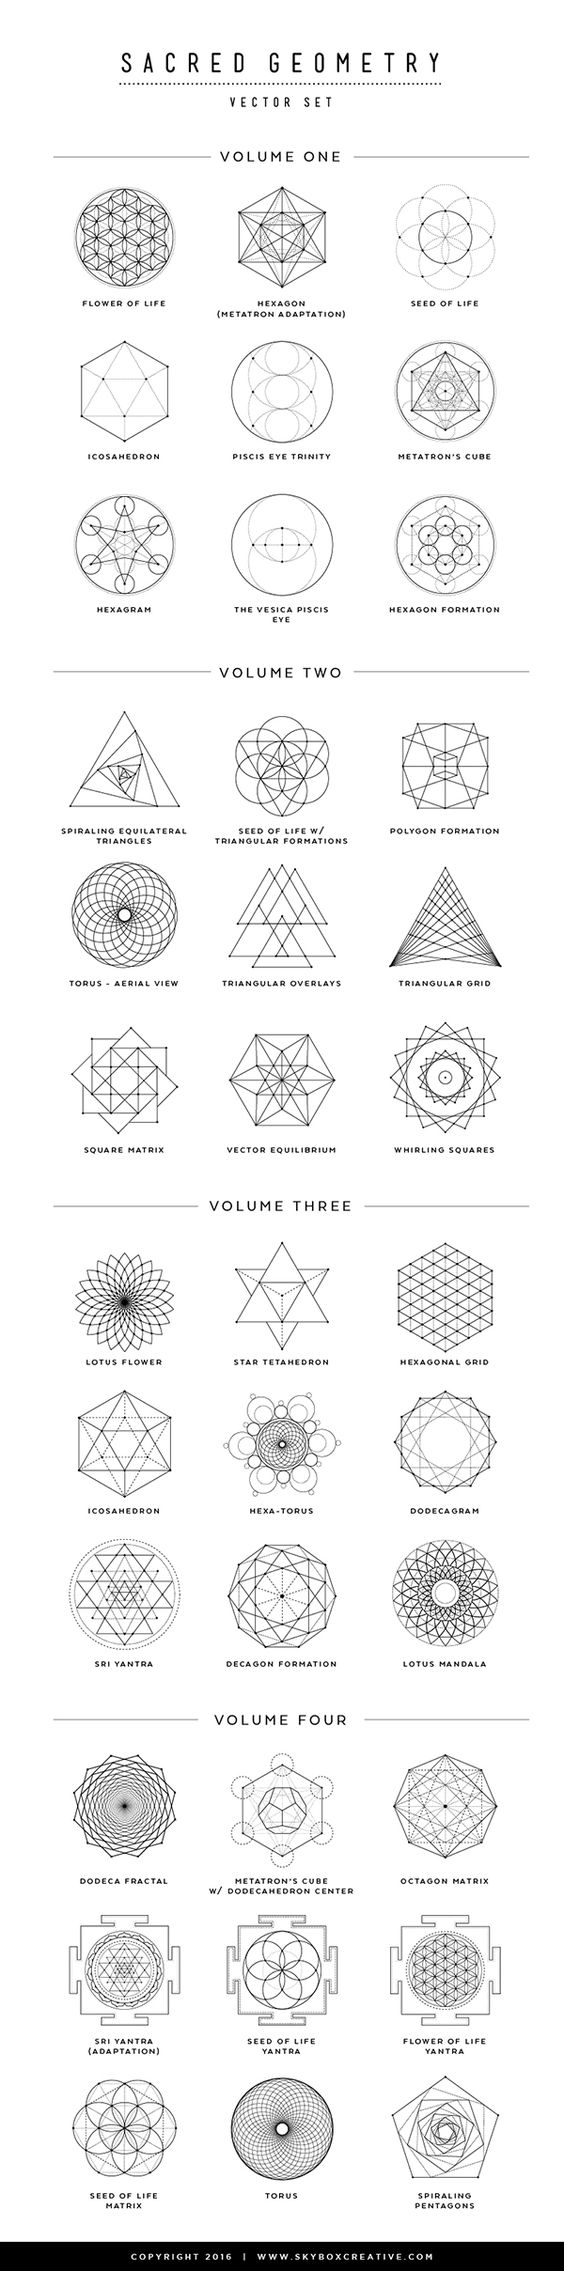 sacred-geometry-vectors-1